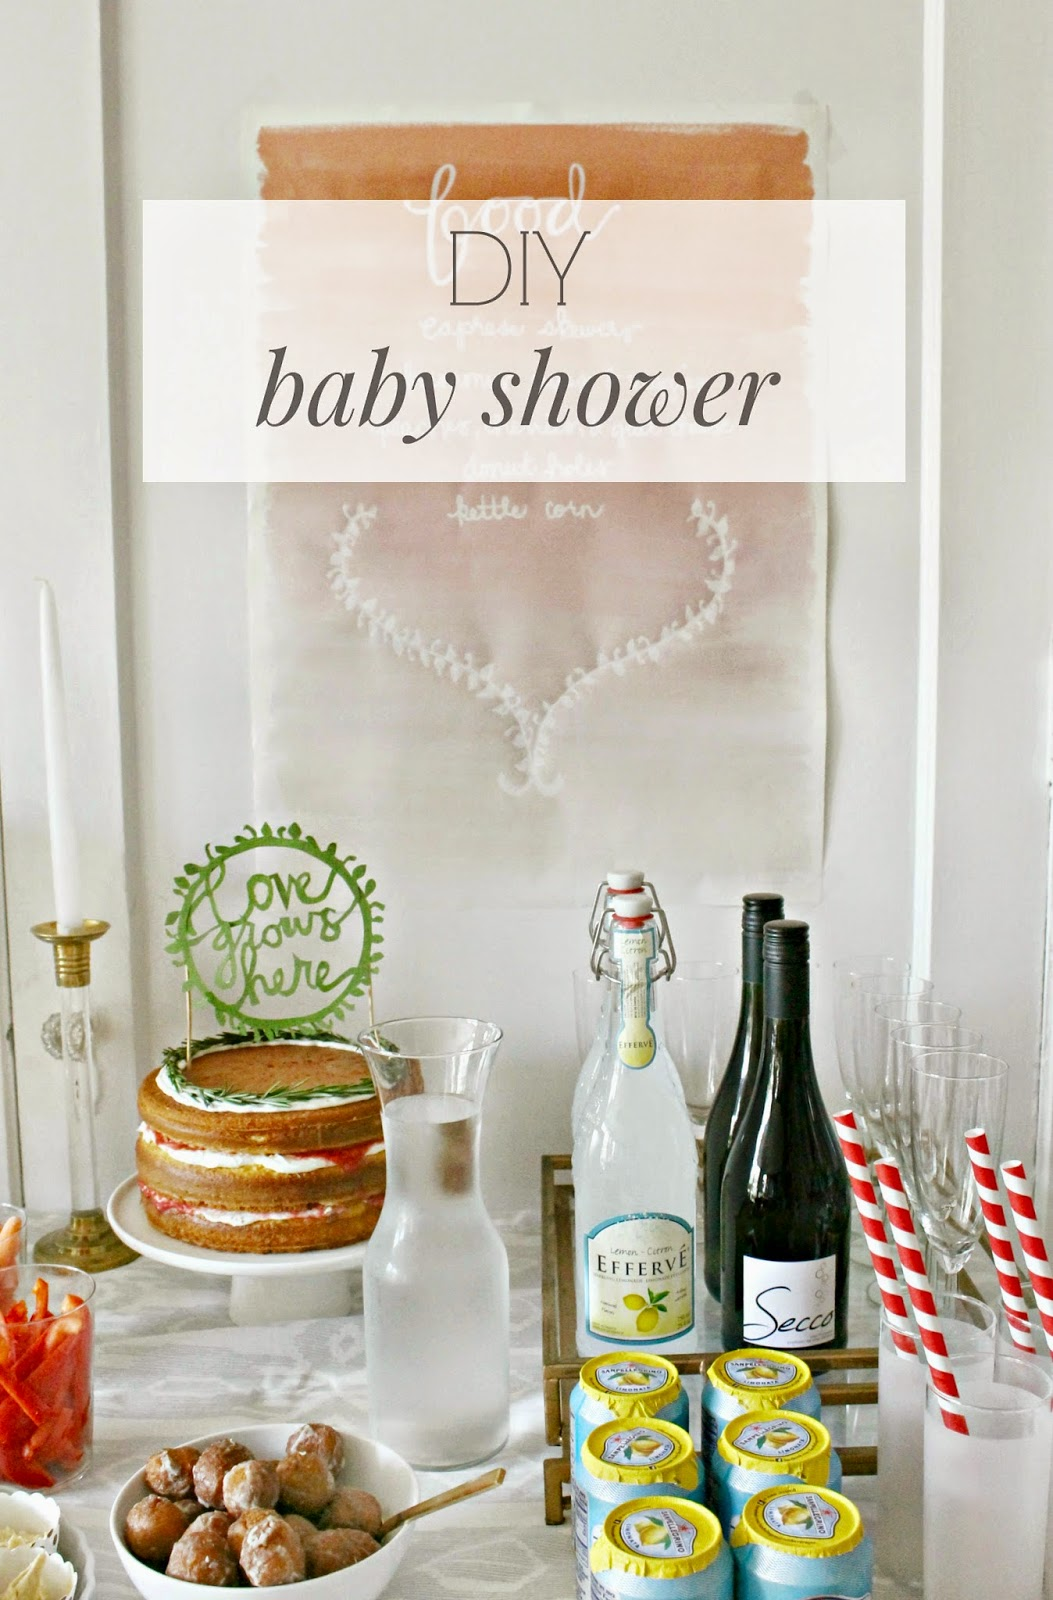 DIY Baby Shower!